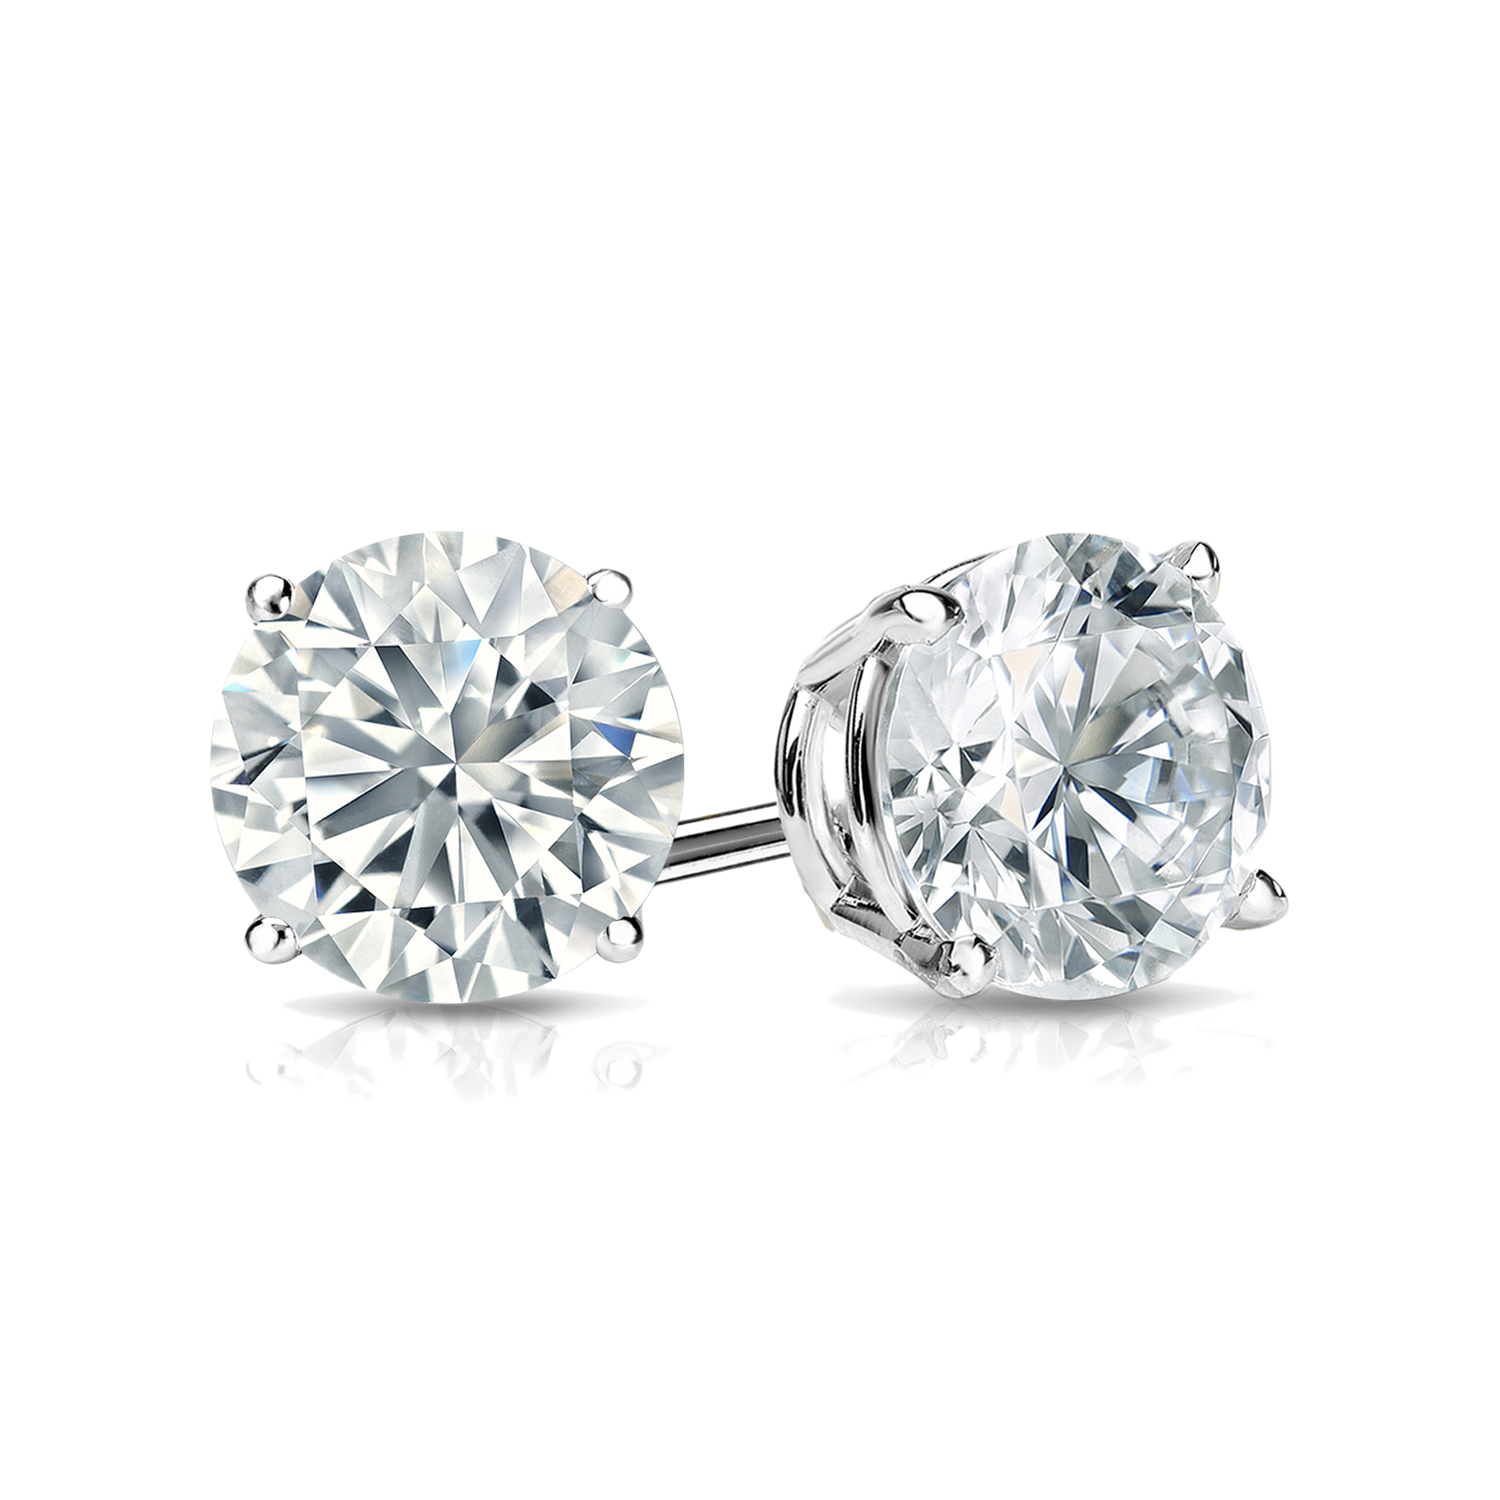 Certified 0.75 cttw Round Diamond Stud Earrings in 14k White Gold 4-Prong Basket (I-J, I1)